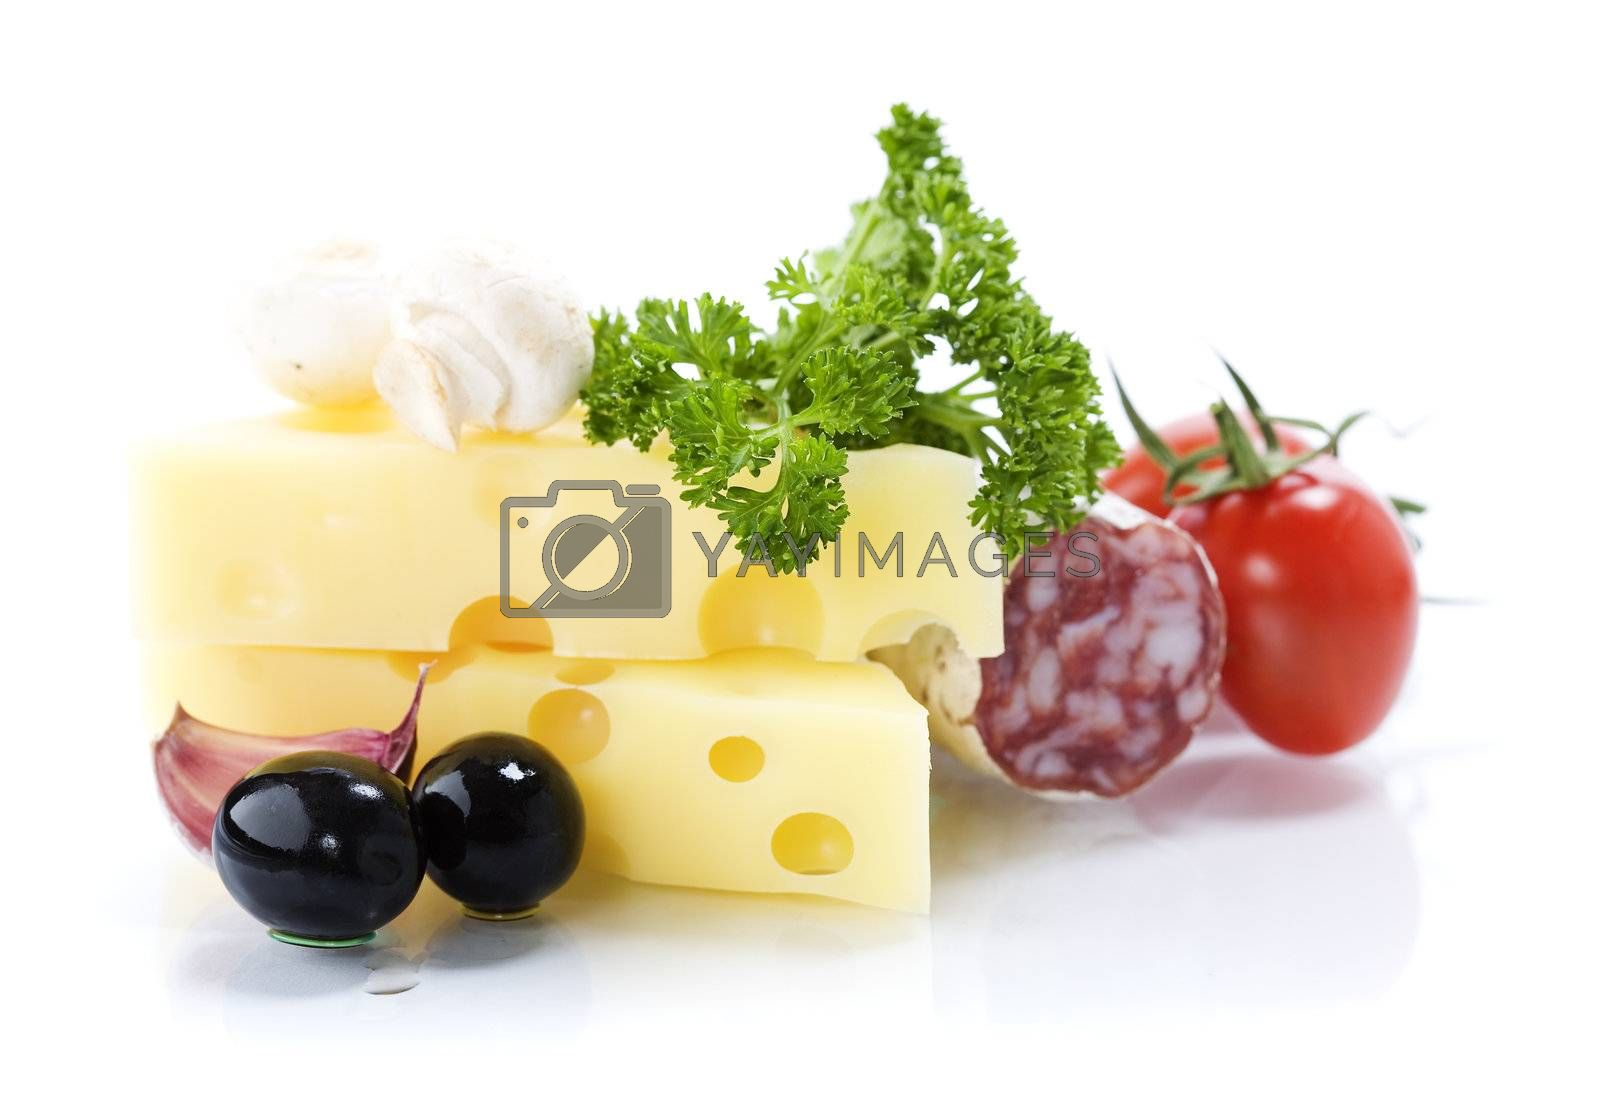 Tasty salami, cheese, tomato, olives and fresh parsley on white background